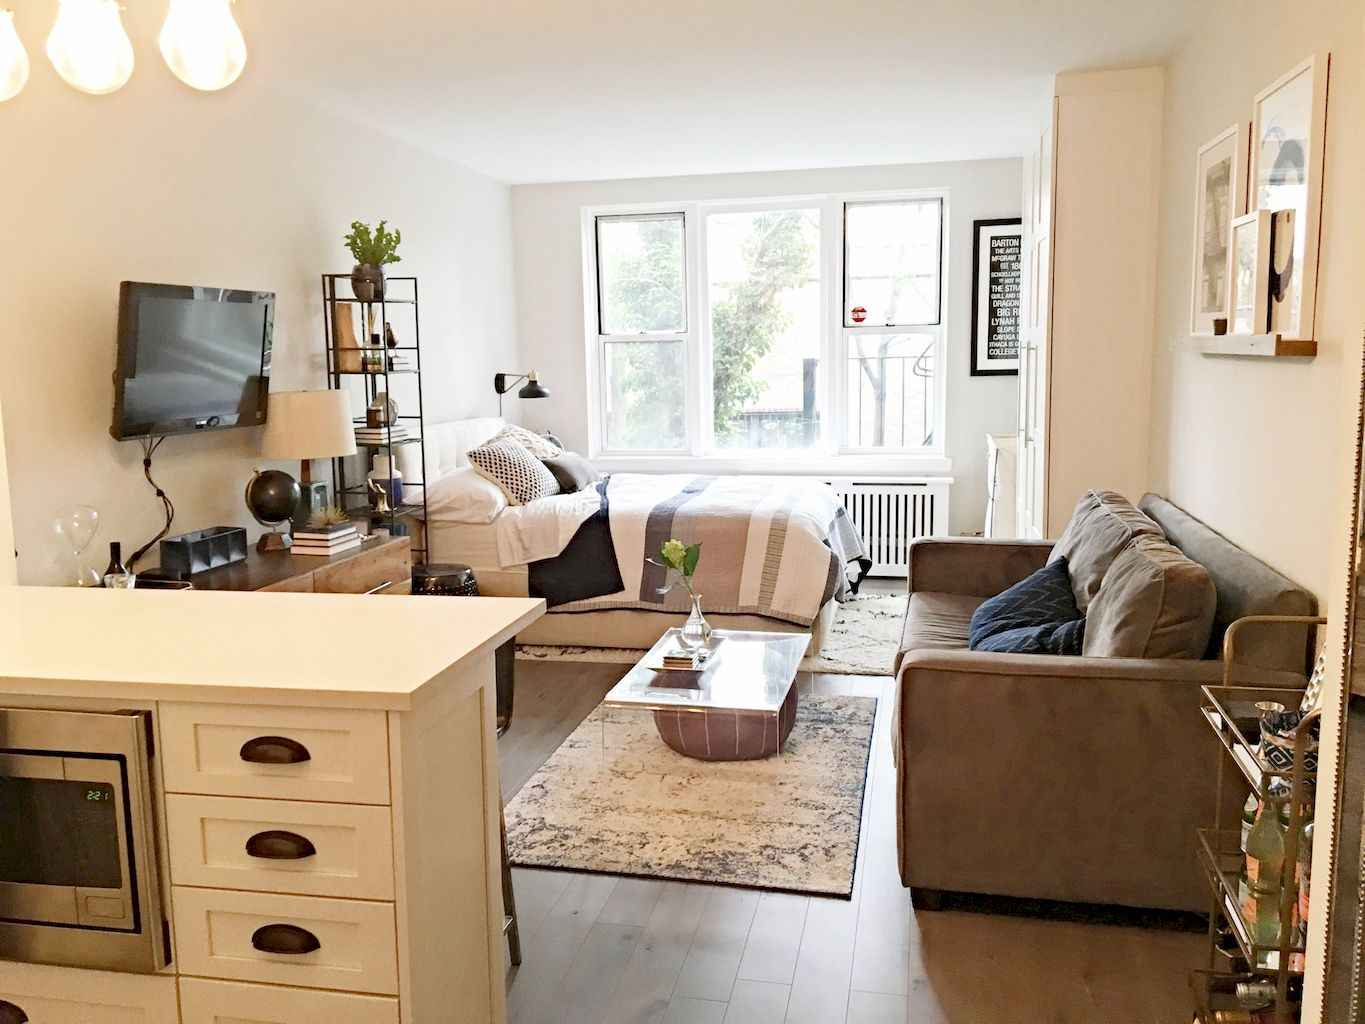 Small apartment studio decorating ideas on a budget (84)